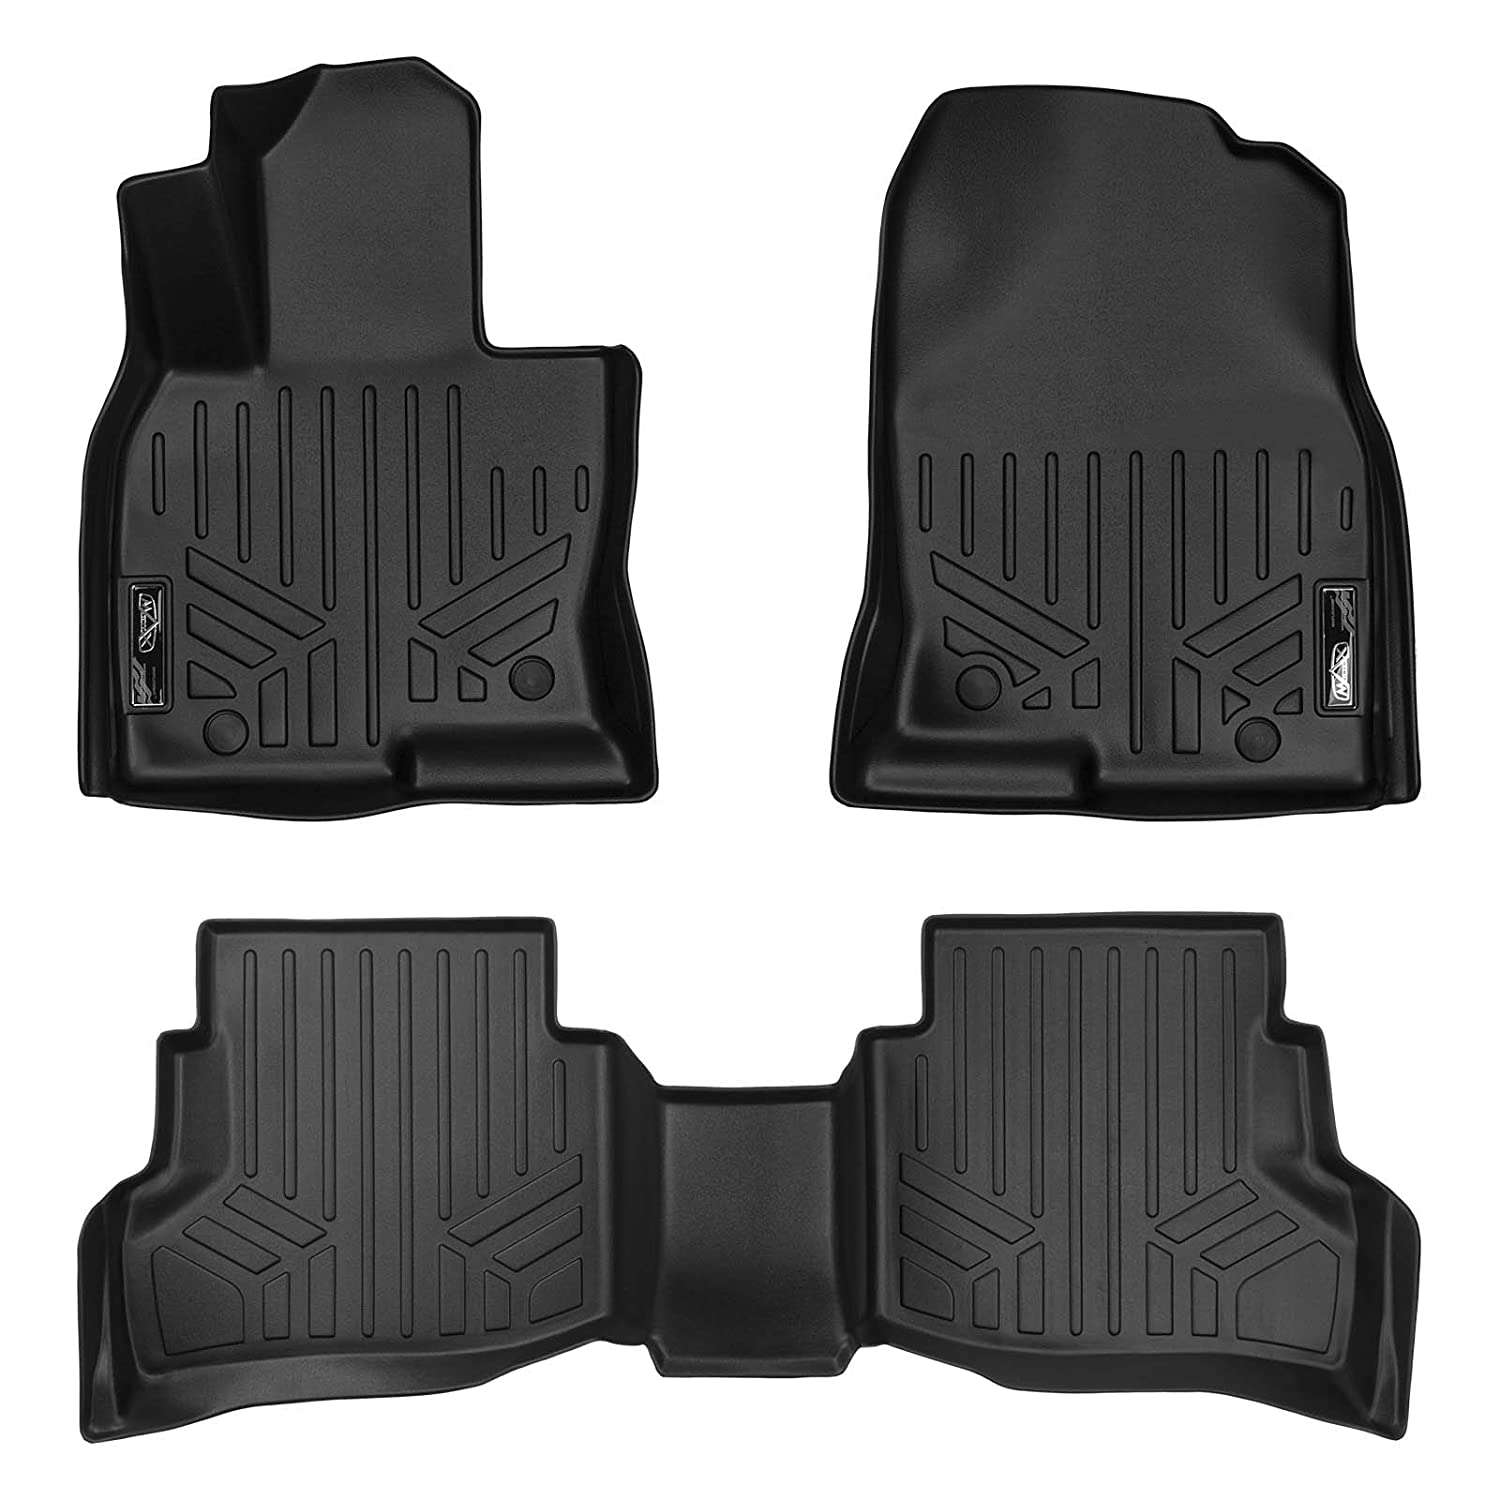 MAX LINER A0257//B0257//C0257 MAXFLOORMAT Floor Mats 3 Row Set Black for 2016-2017 Mazda CX-9